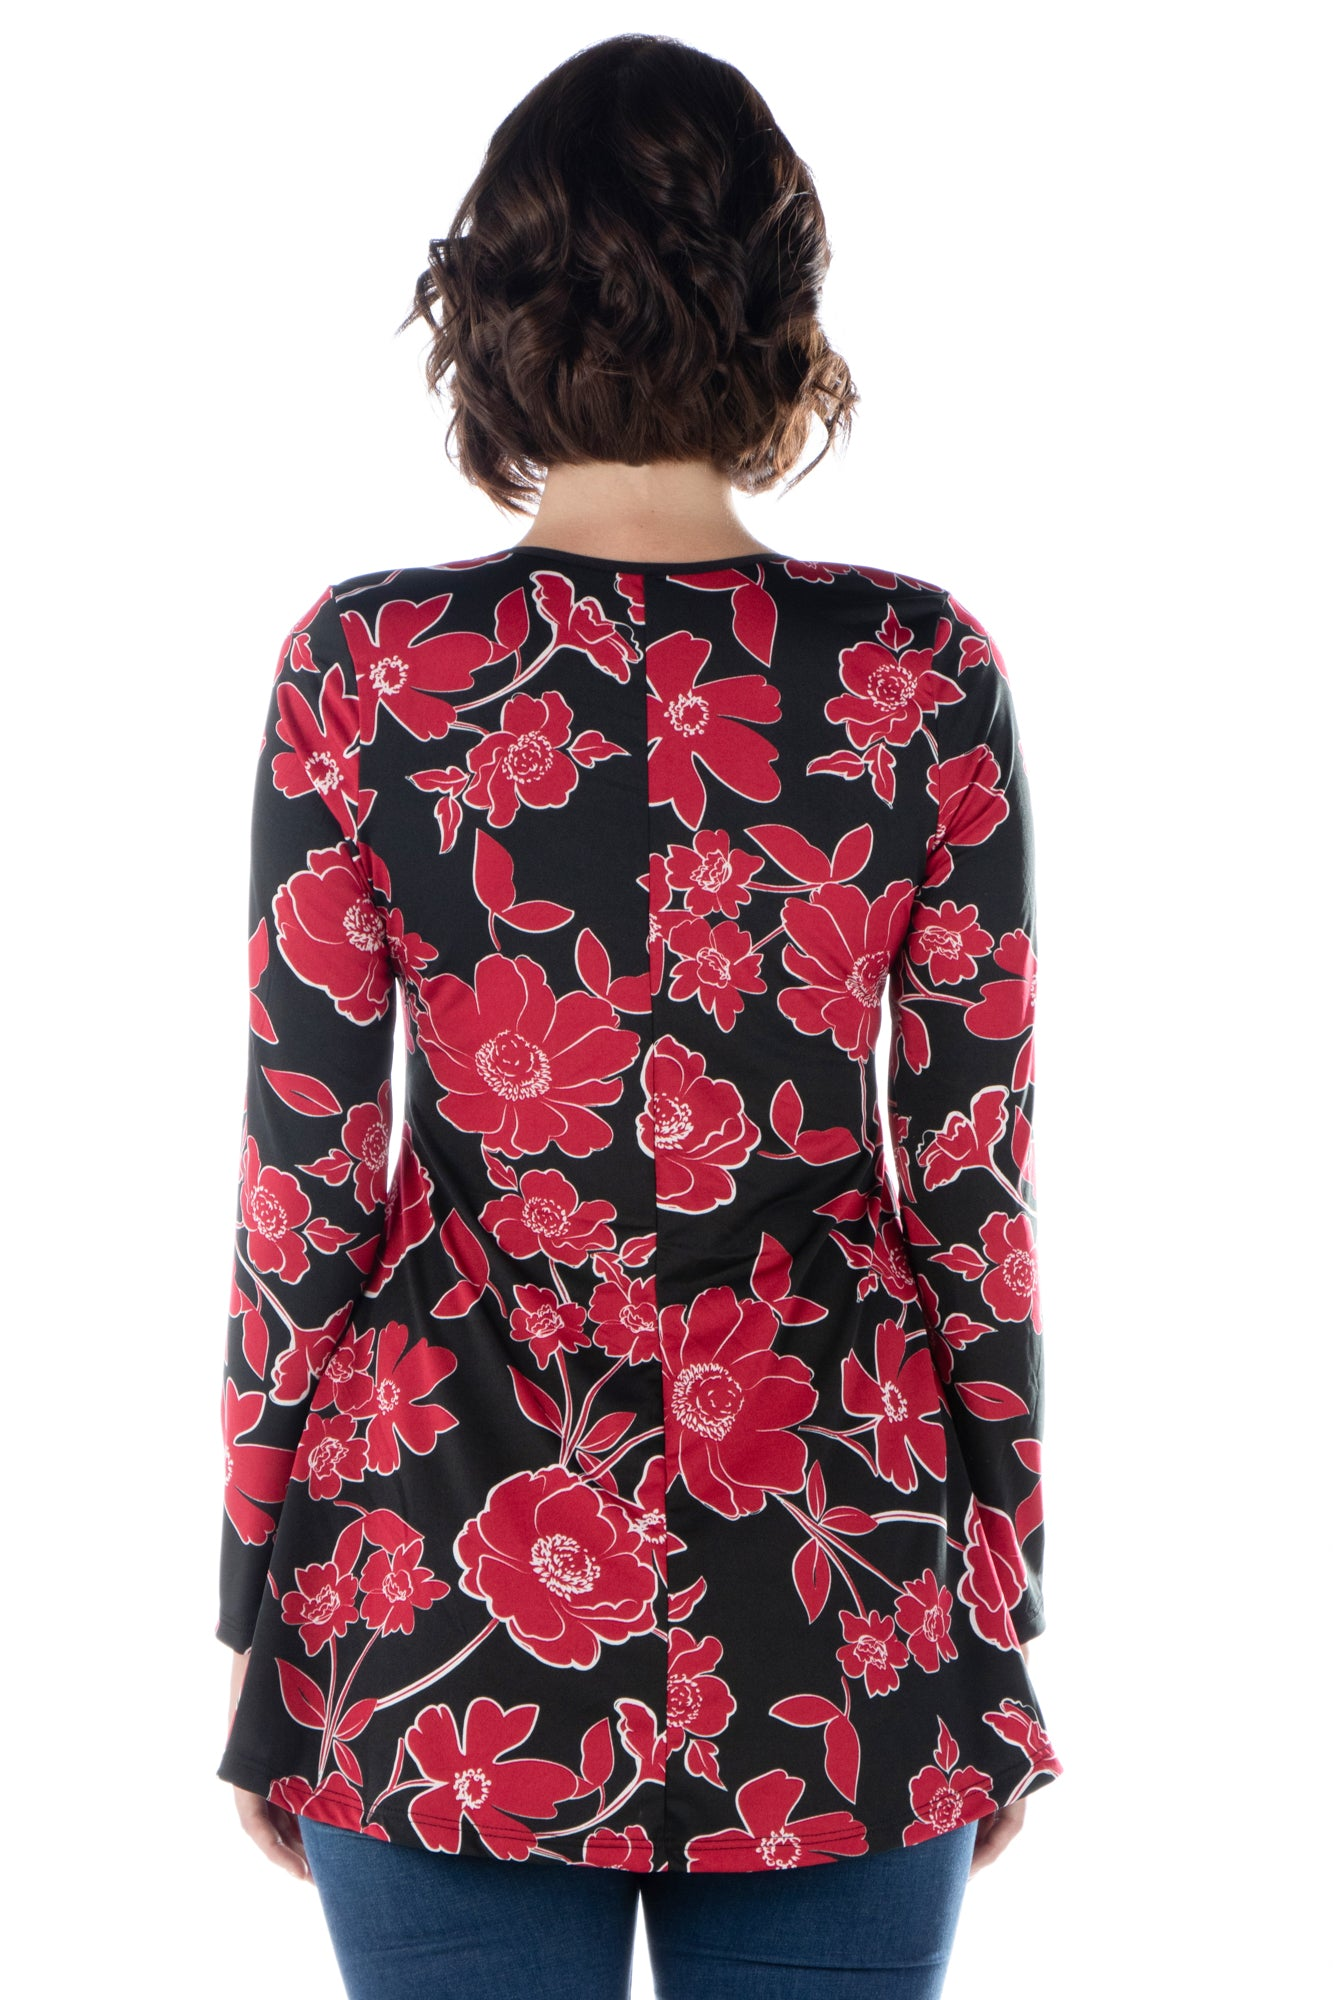 24seven Comfort Apparel Red Floral Long Sleeve Scoop Neck Swing Top